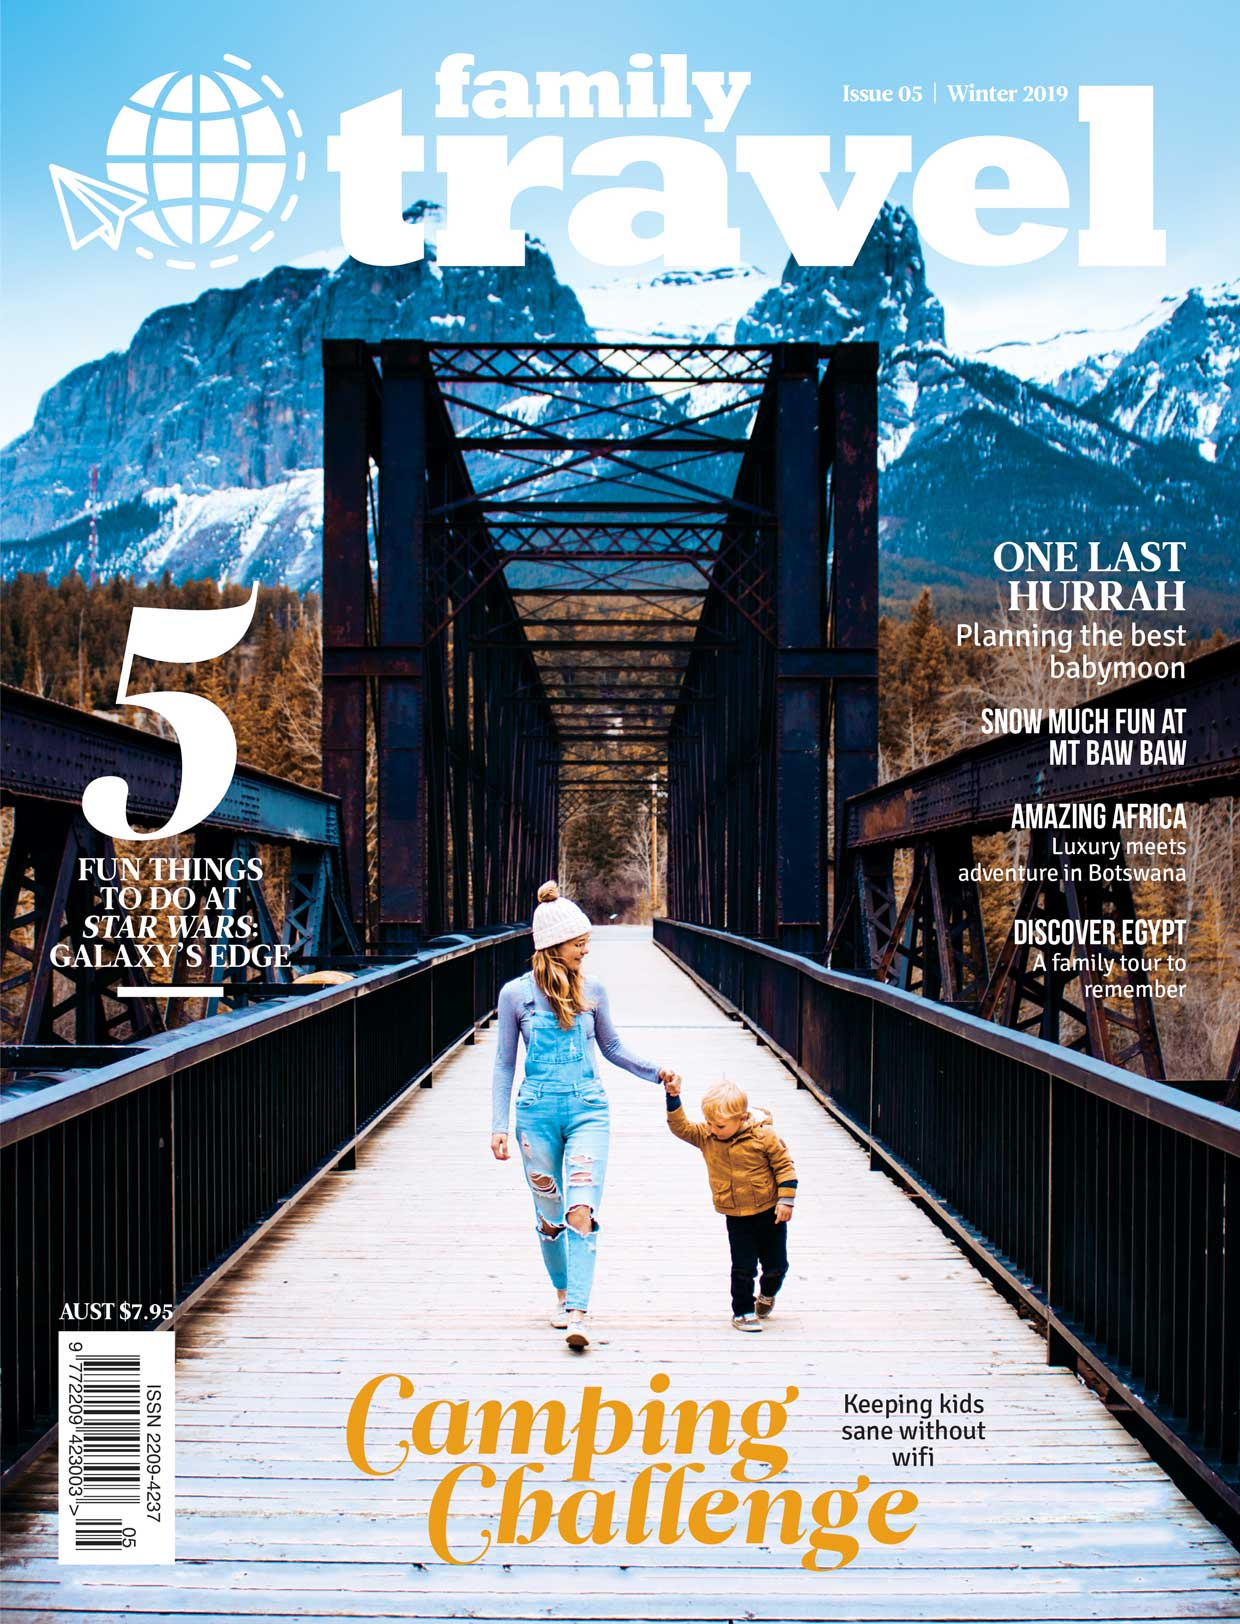 Family Travel mag #5 cover